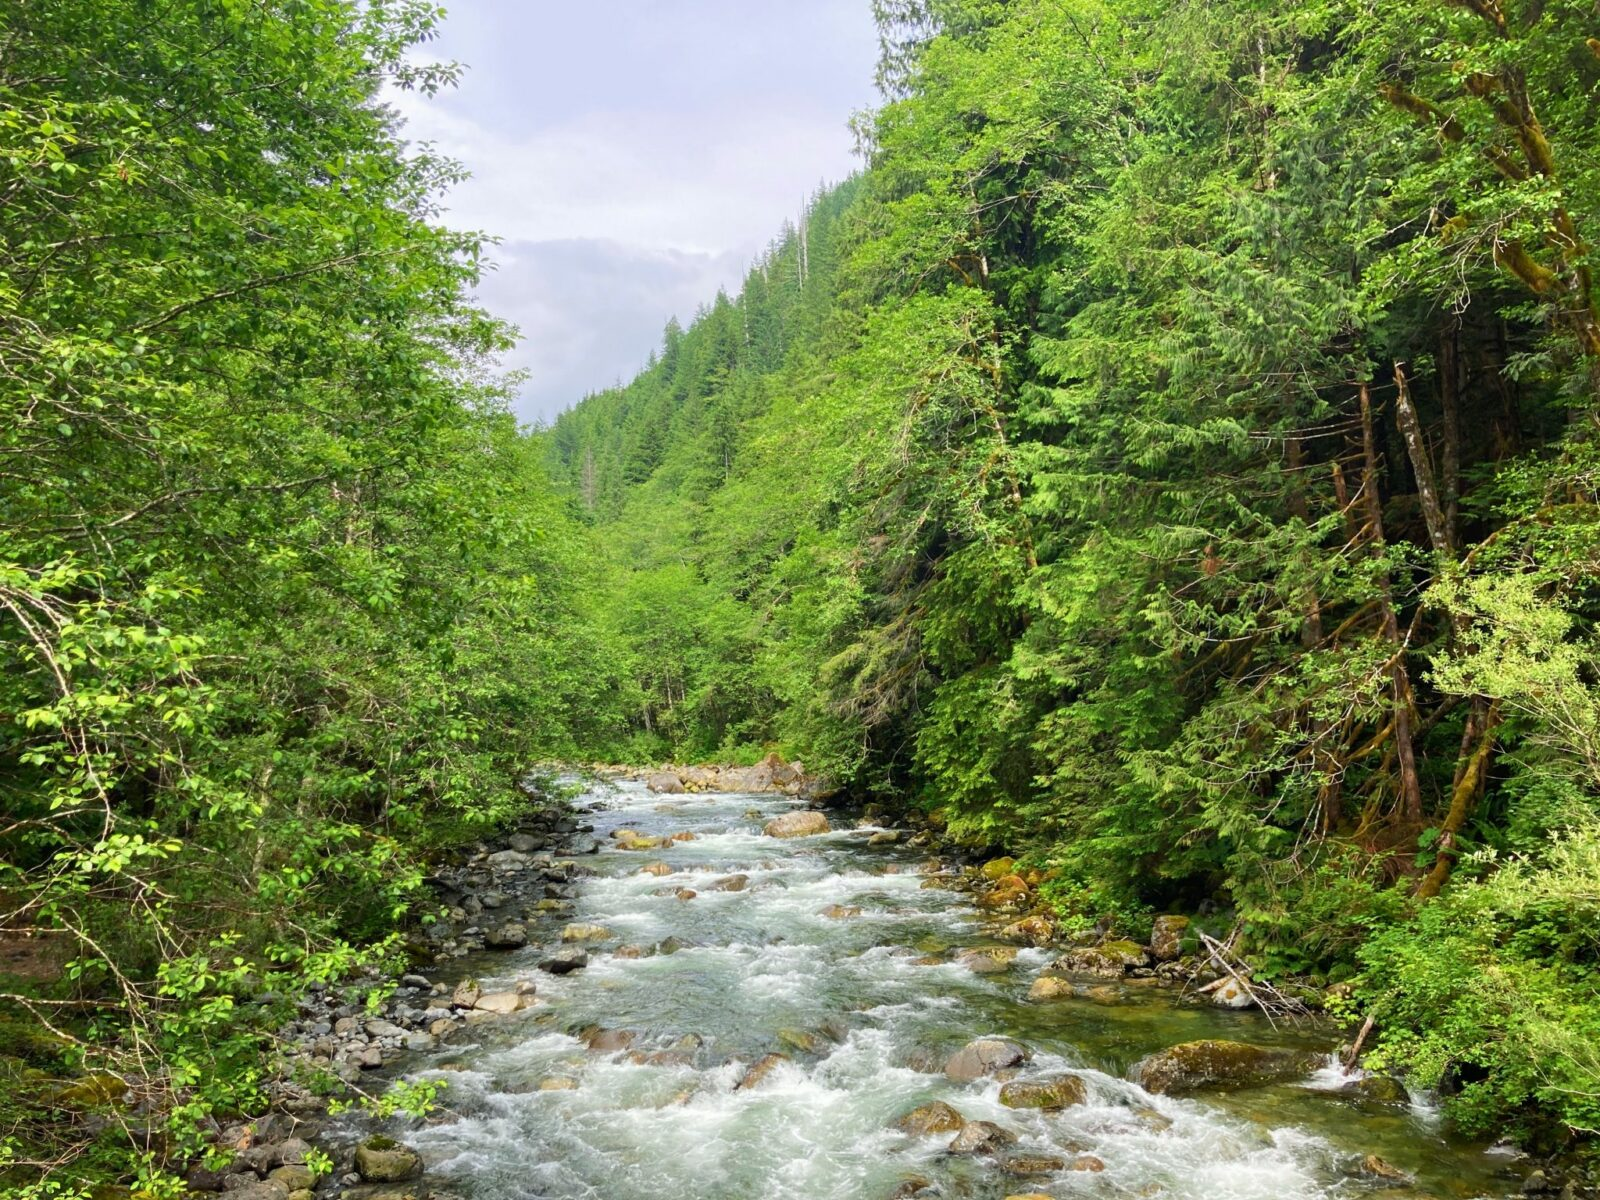 The Taylor River rushes over rocks and moss through an evergreen forest along the length of the Snoqualmie Lake trail to Otter Falls